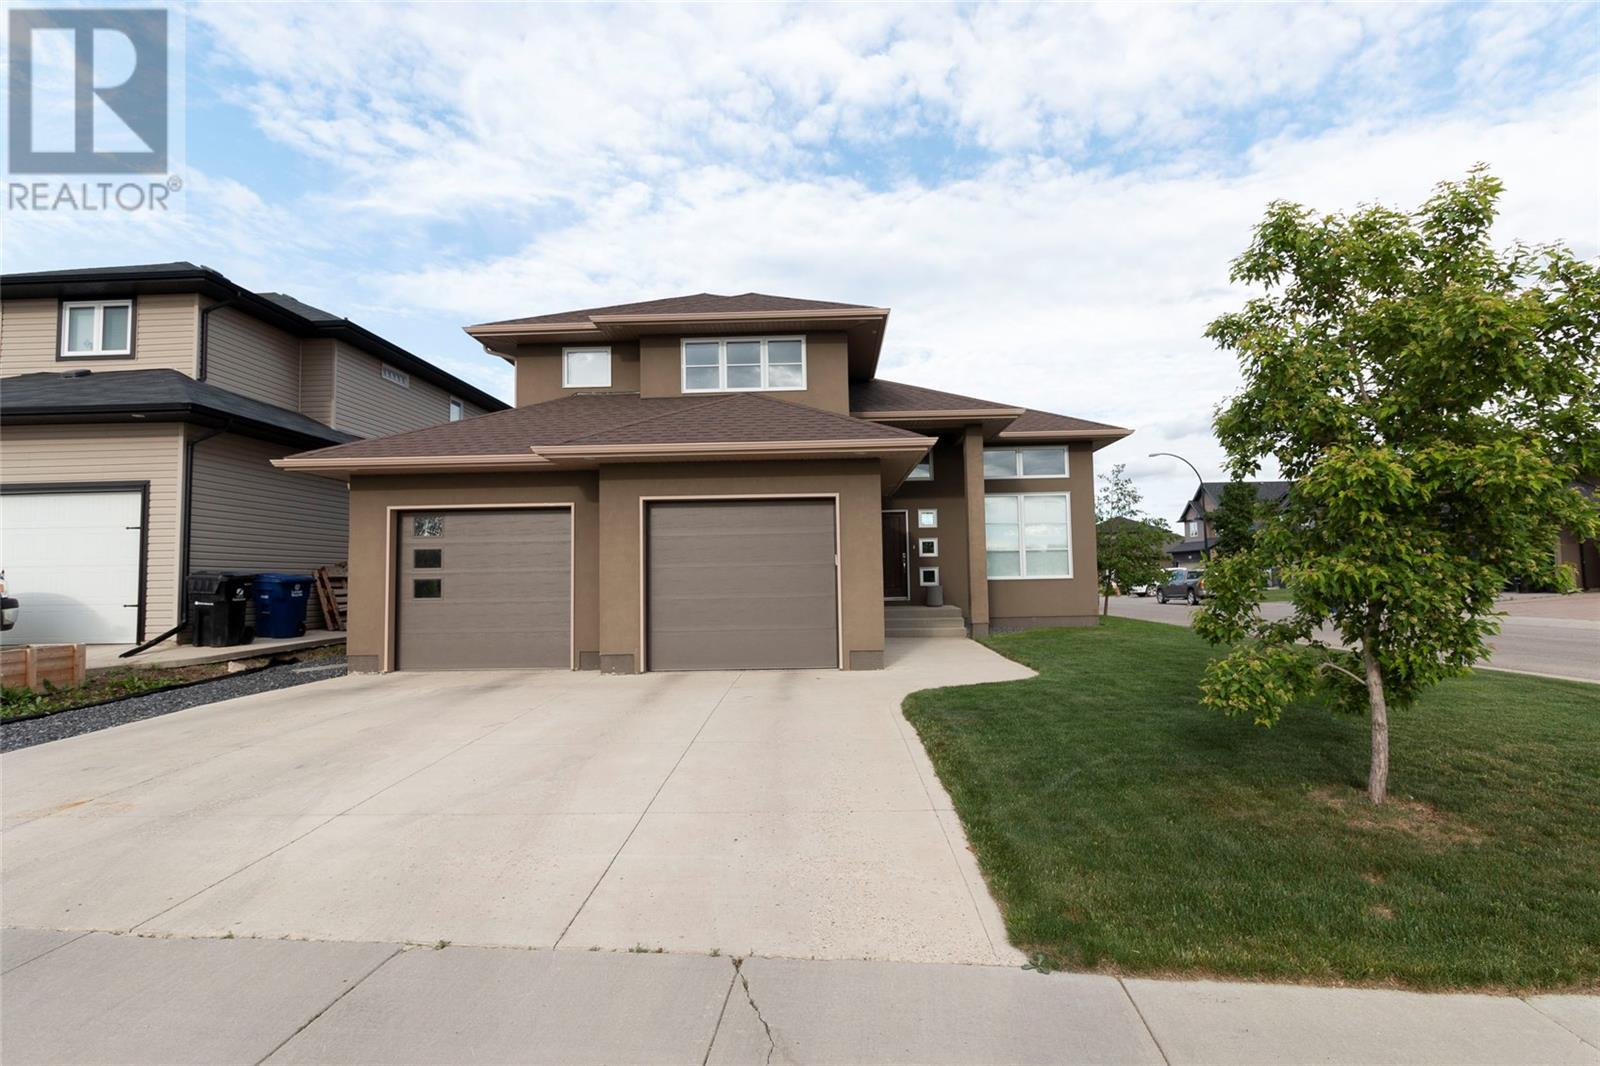 Removed: 803 Paton Avenue, Saskatoon, SK - Removed on 2019-06-27 05:36:04